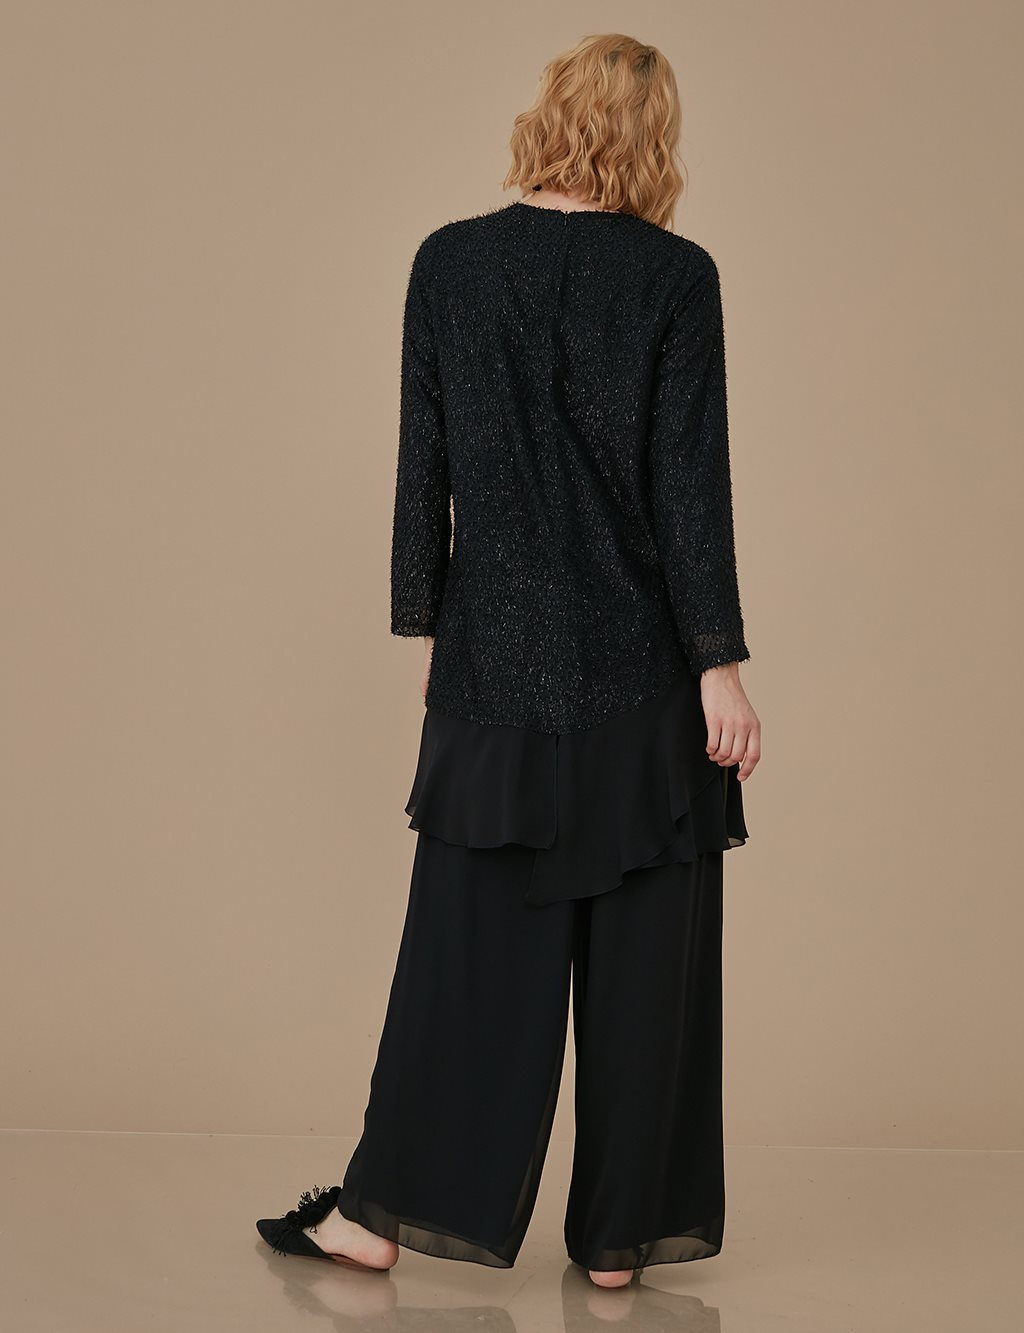 Jacquard Suit A9 16004 Black